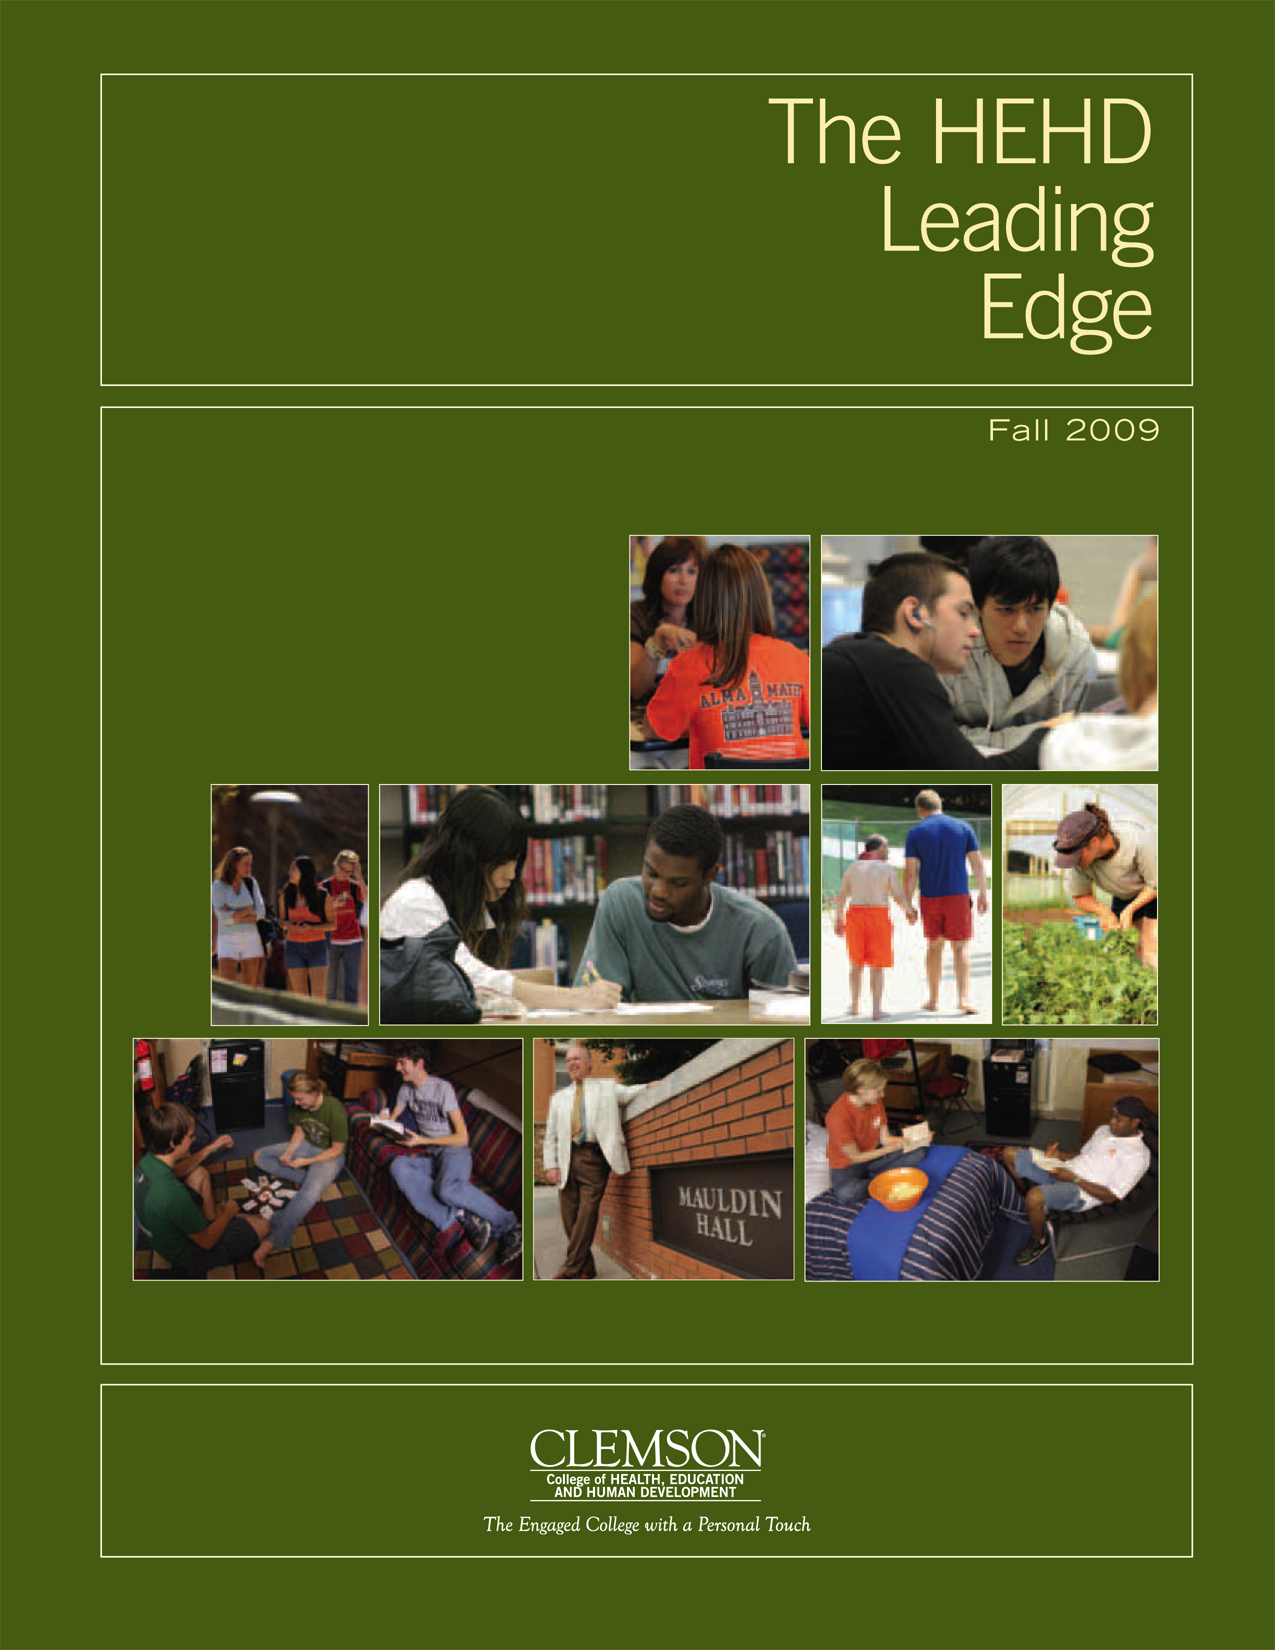 The CBSHS Leading Edge 2009-20010 Edition  Profiling the Faculty and Student within the Clemson University College of Behavioral, Social and Health Sciences